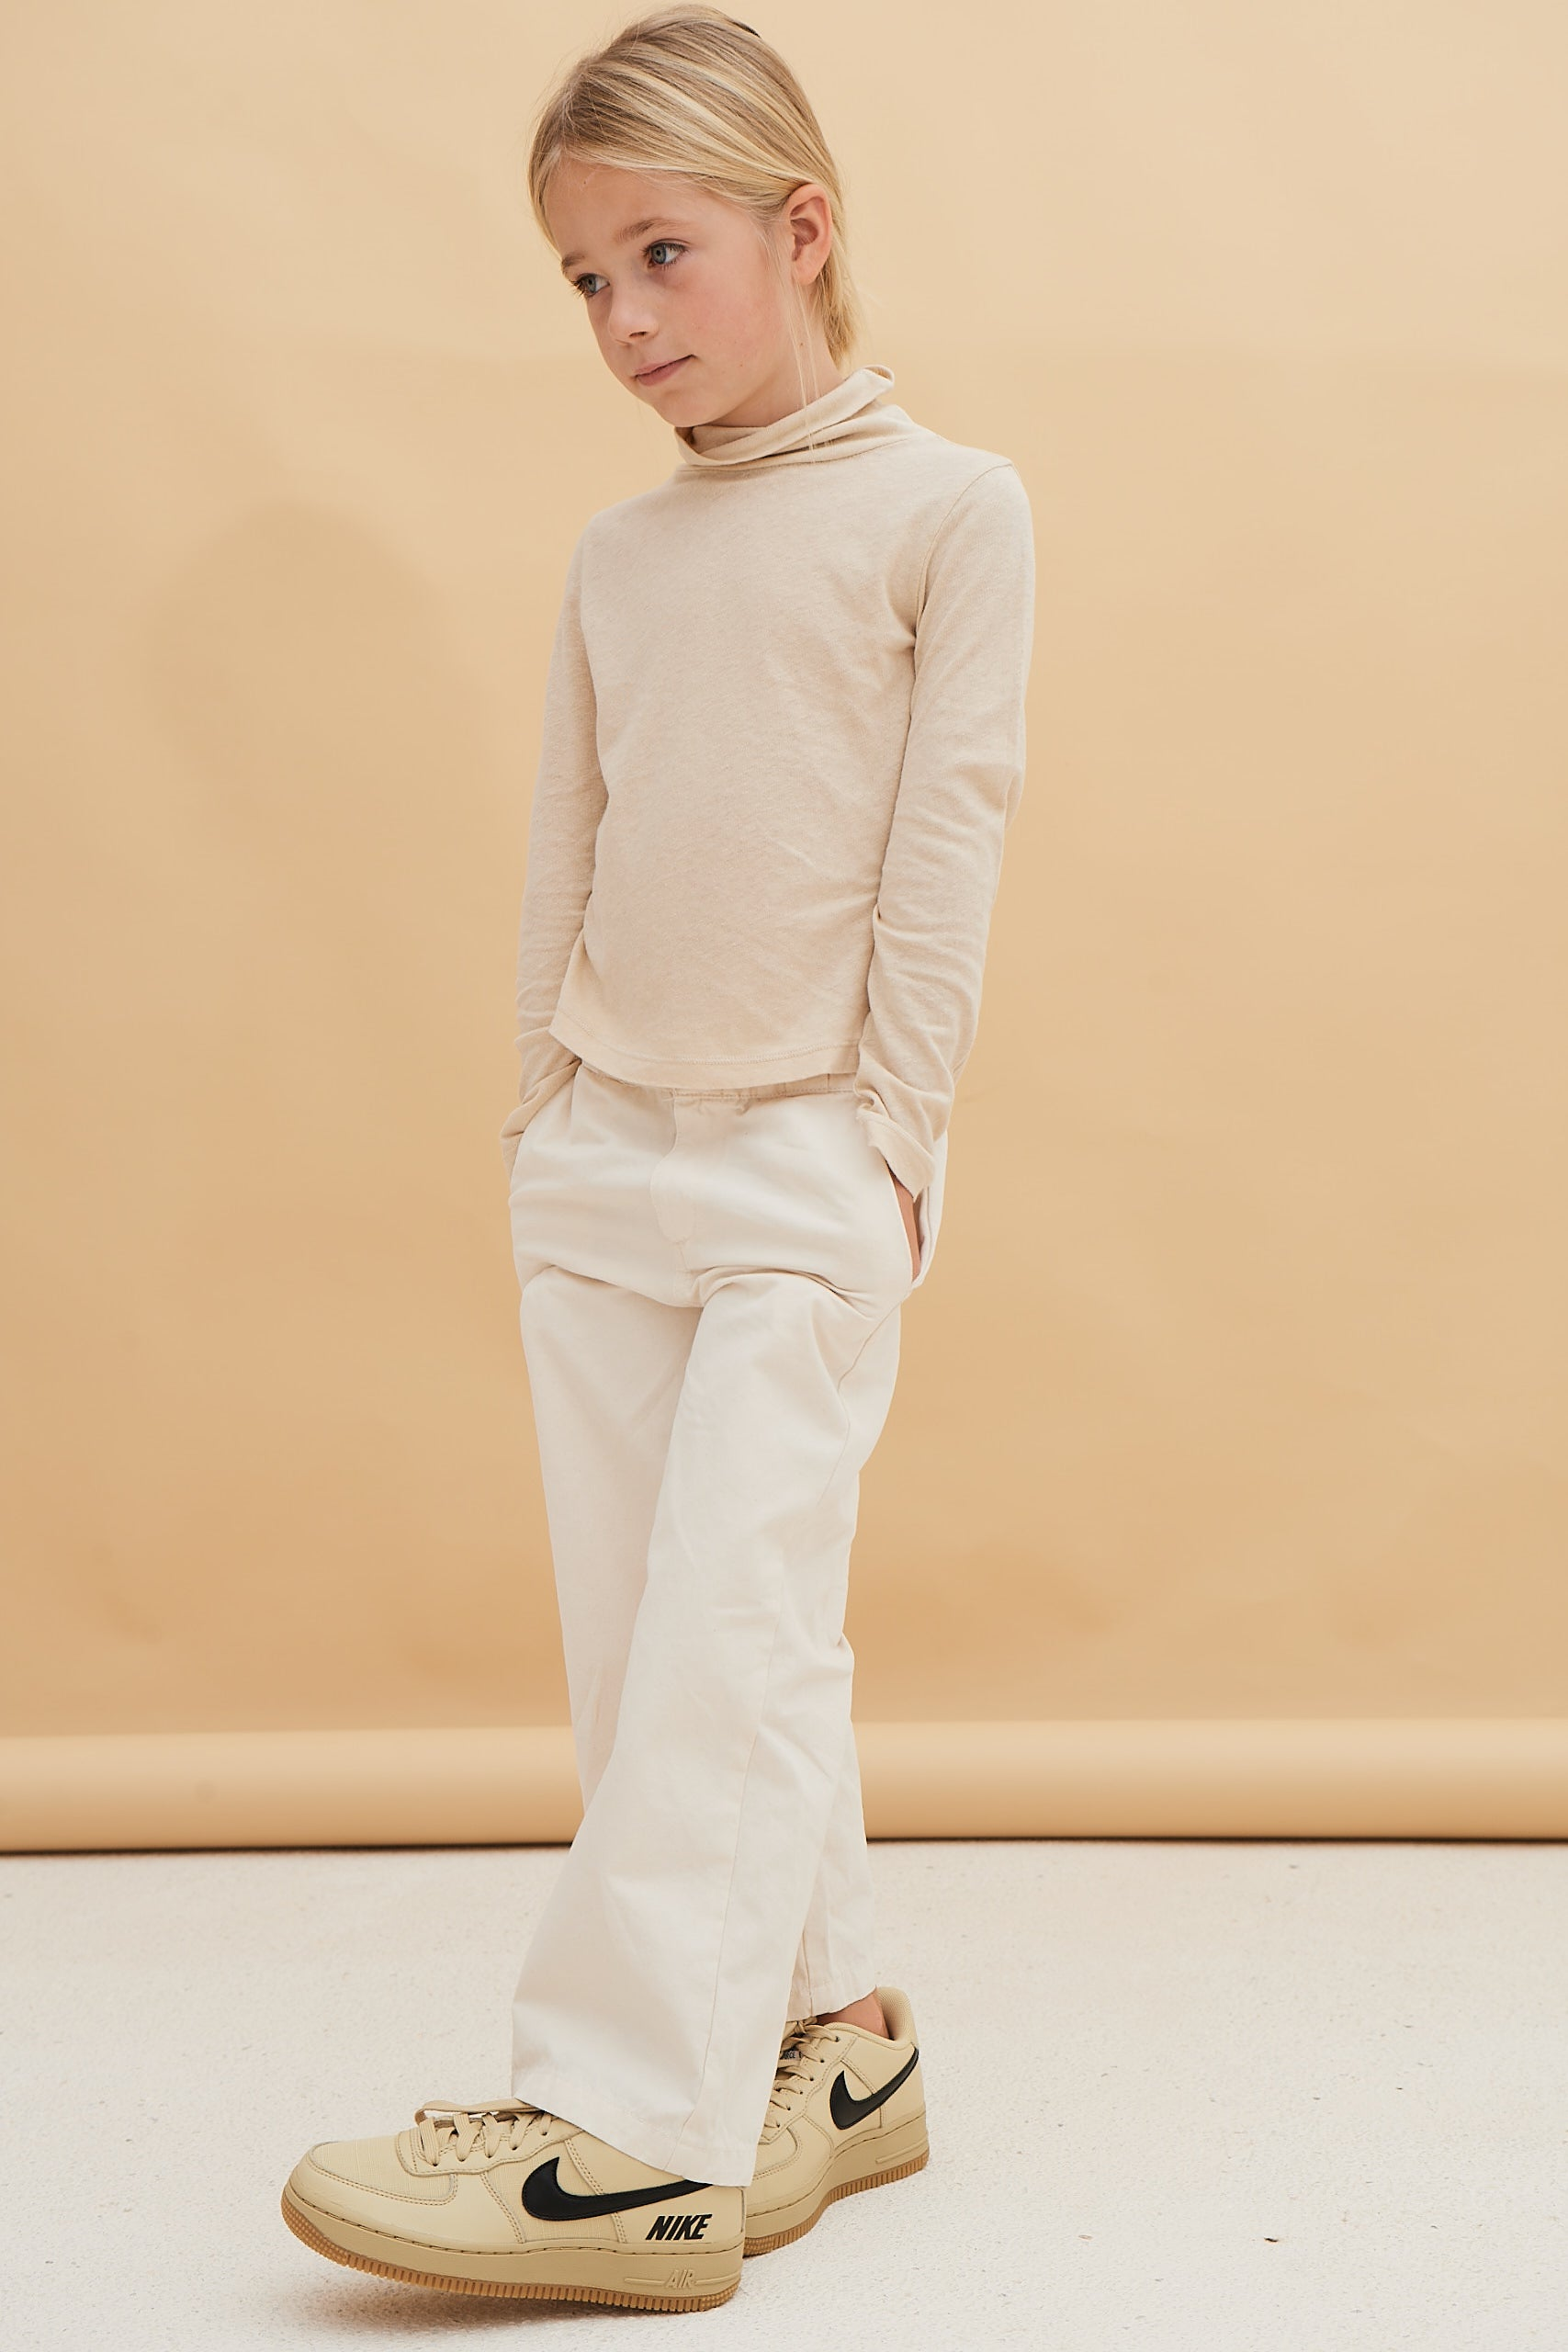 Long Live the Queen Kid's Linen Turtleneck T-Shirt Off-White | BIEN BIEN bienbienshop.com